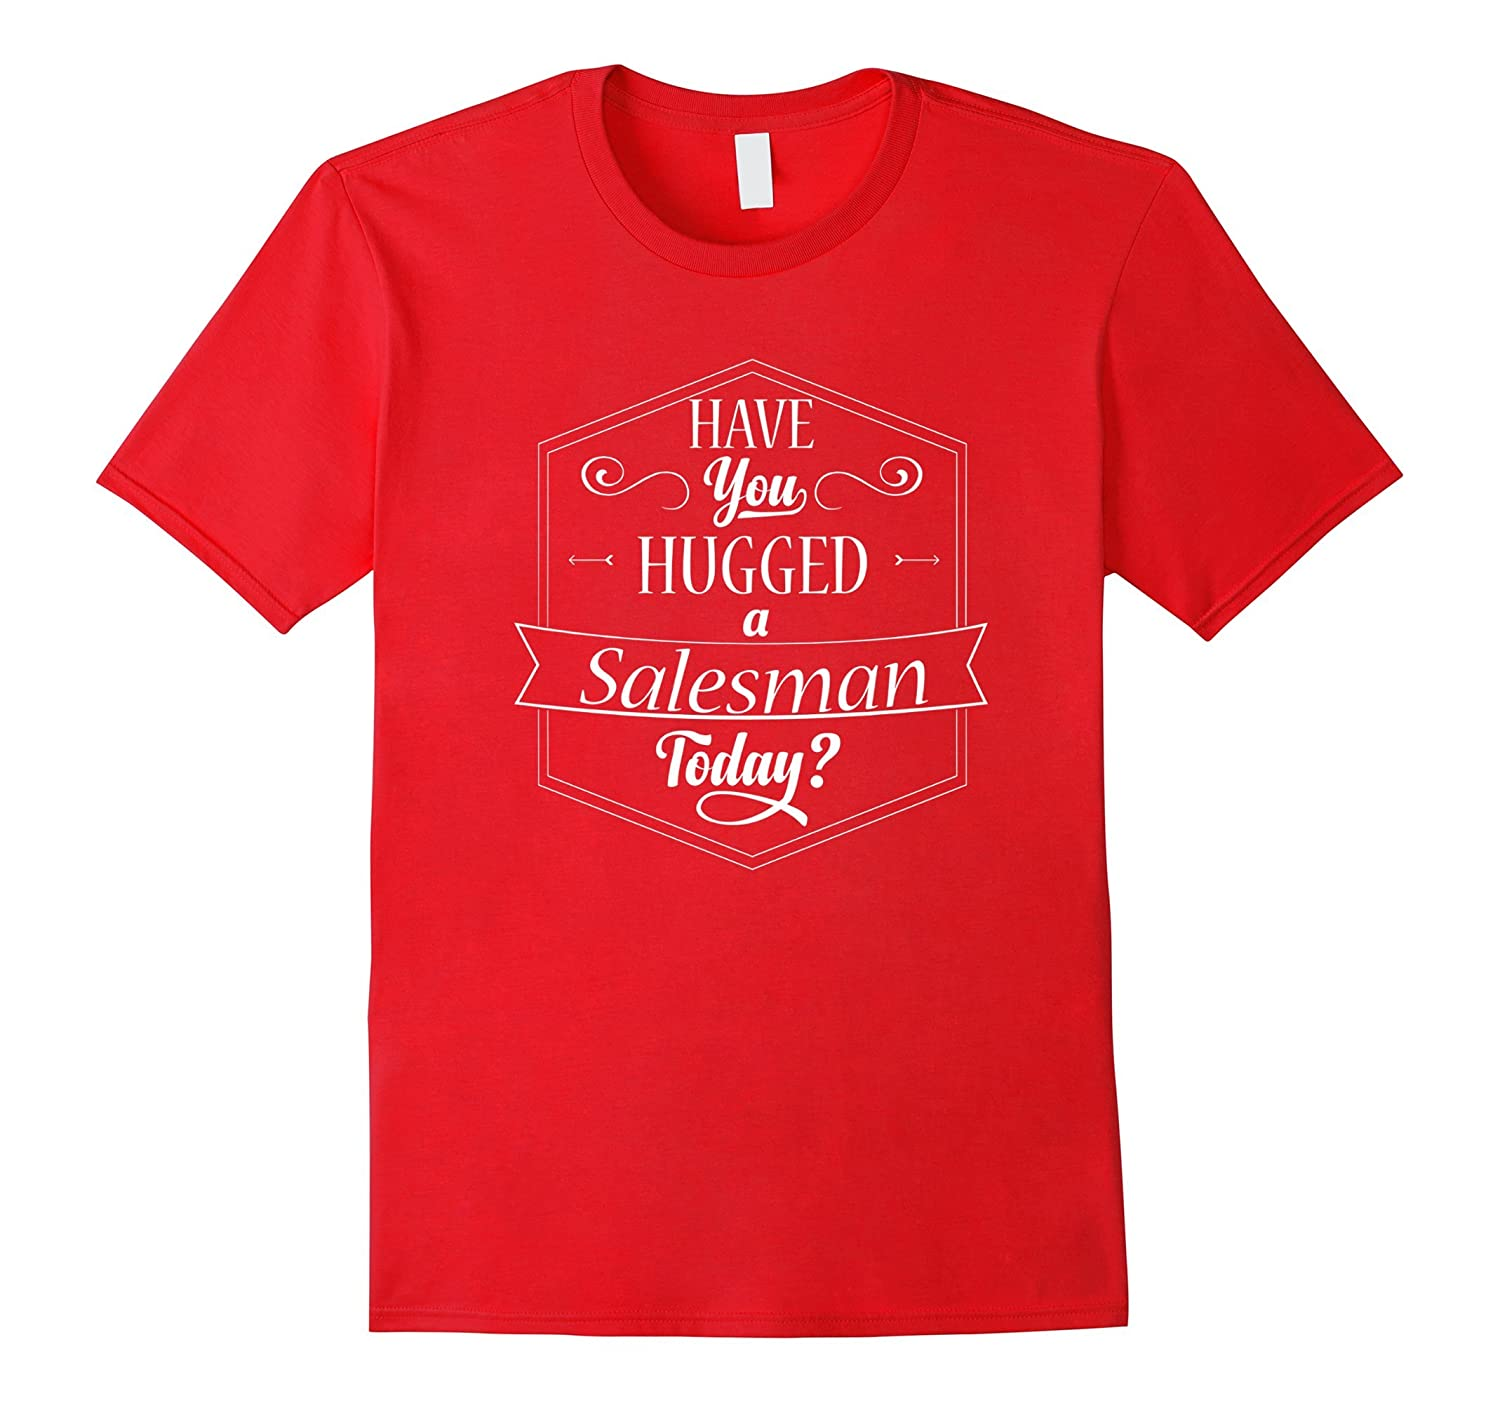 Have You Hugged A Salesman Sales Man Today? Funny Hug TShirt-TJ